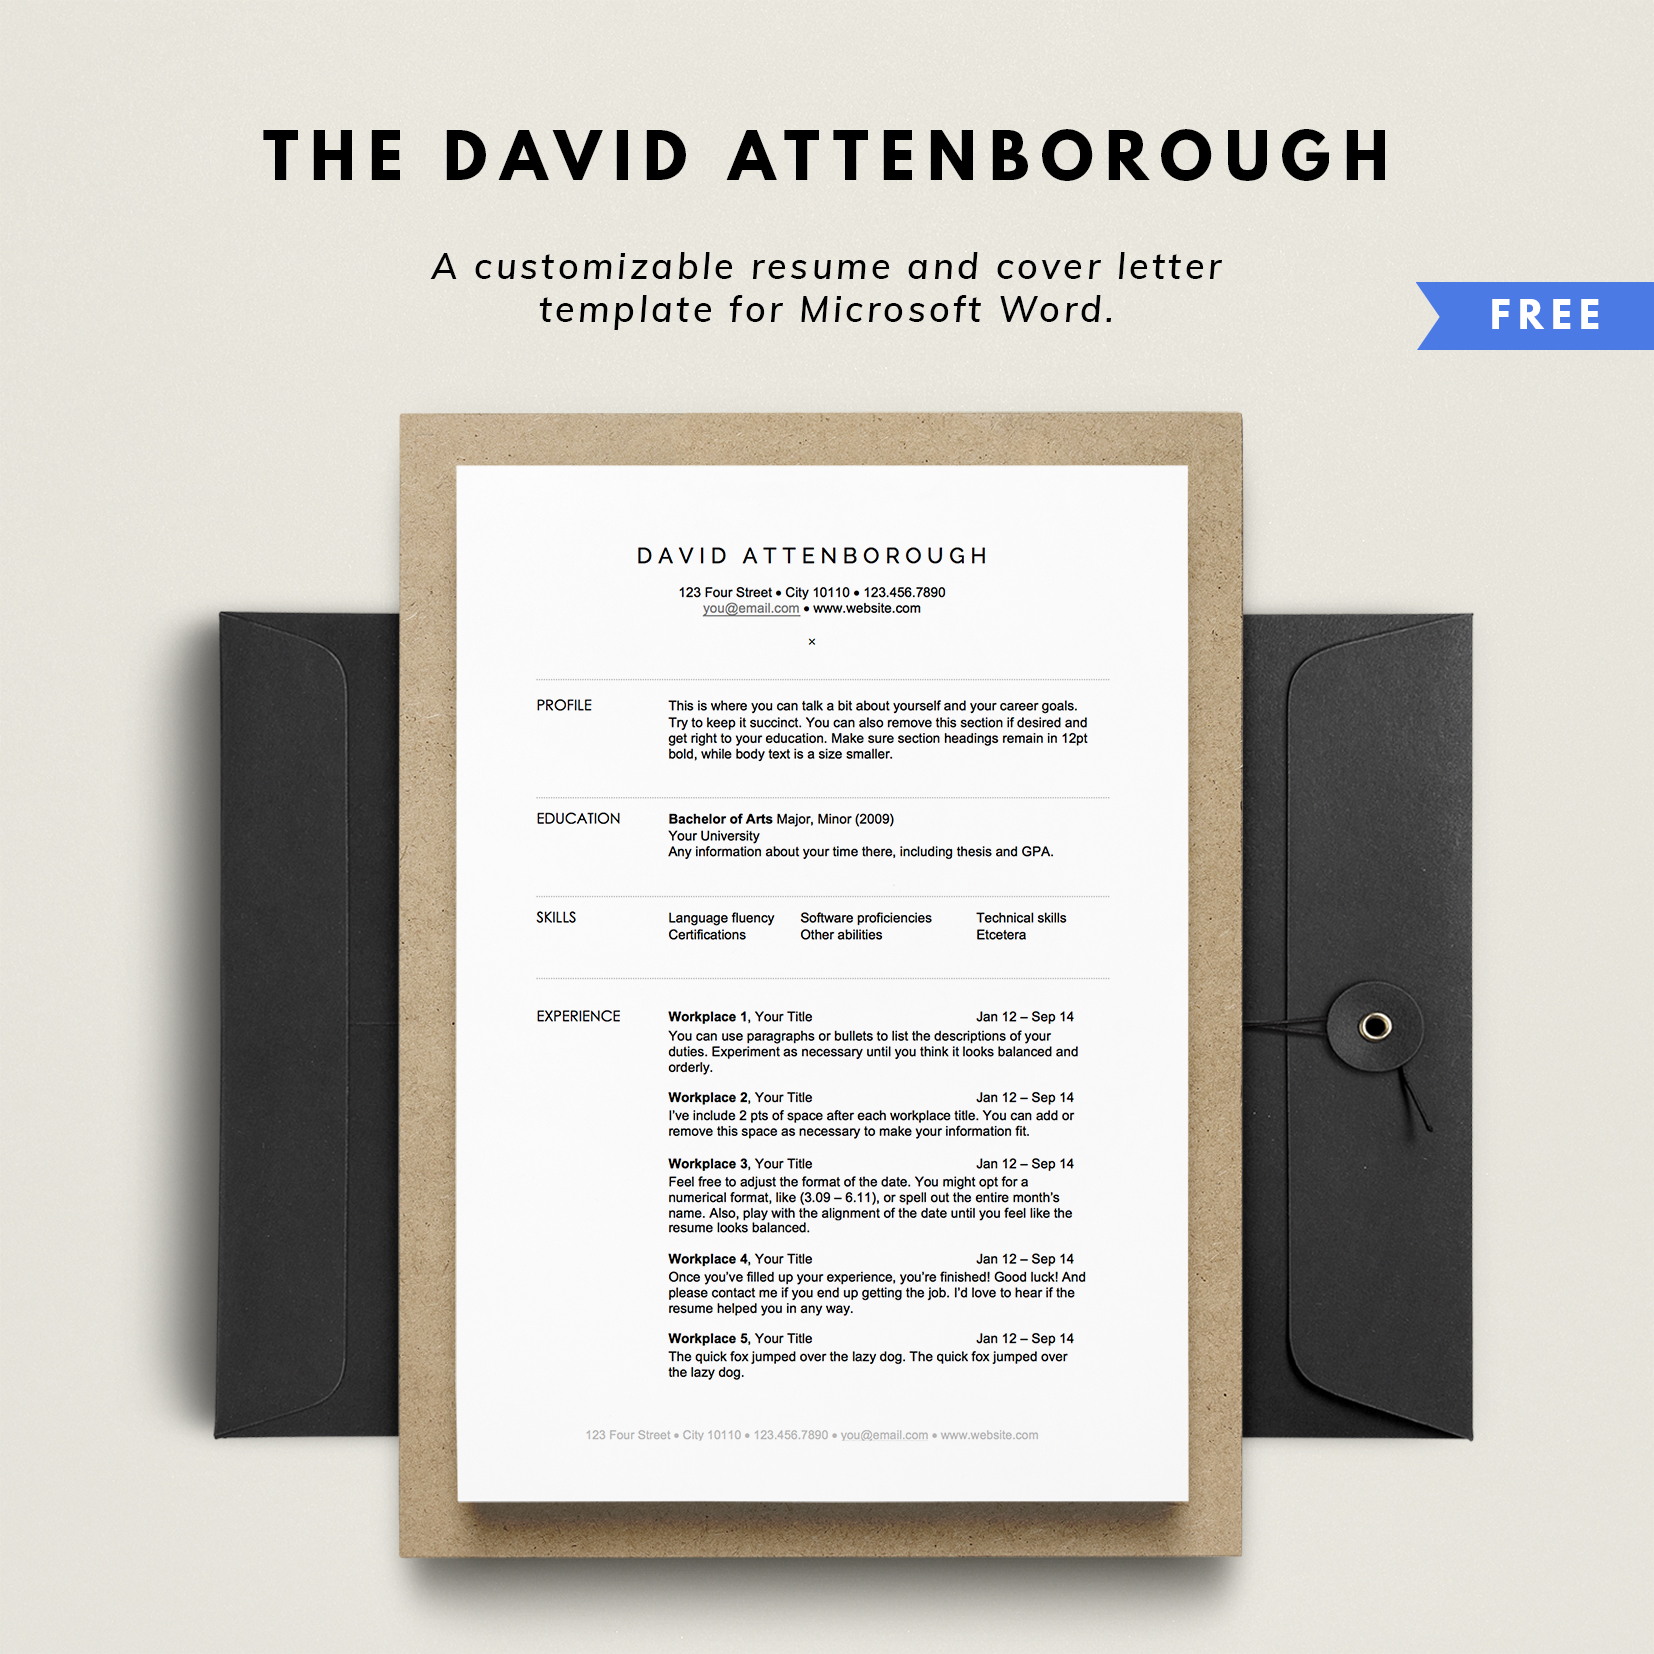 Attenborough Mockup.jpg